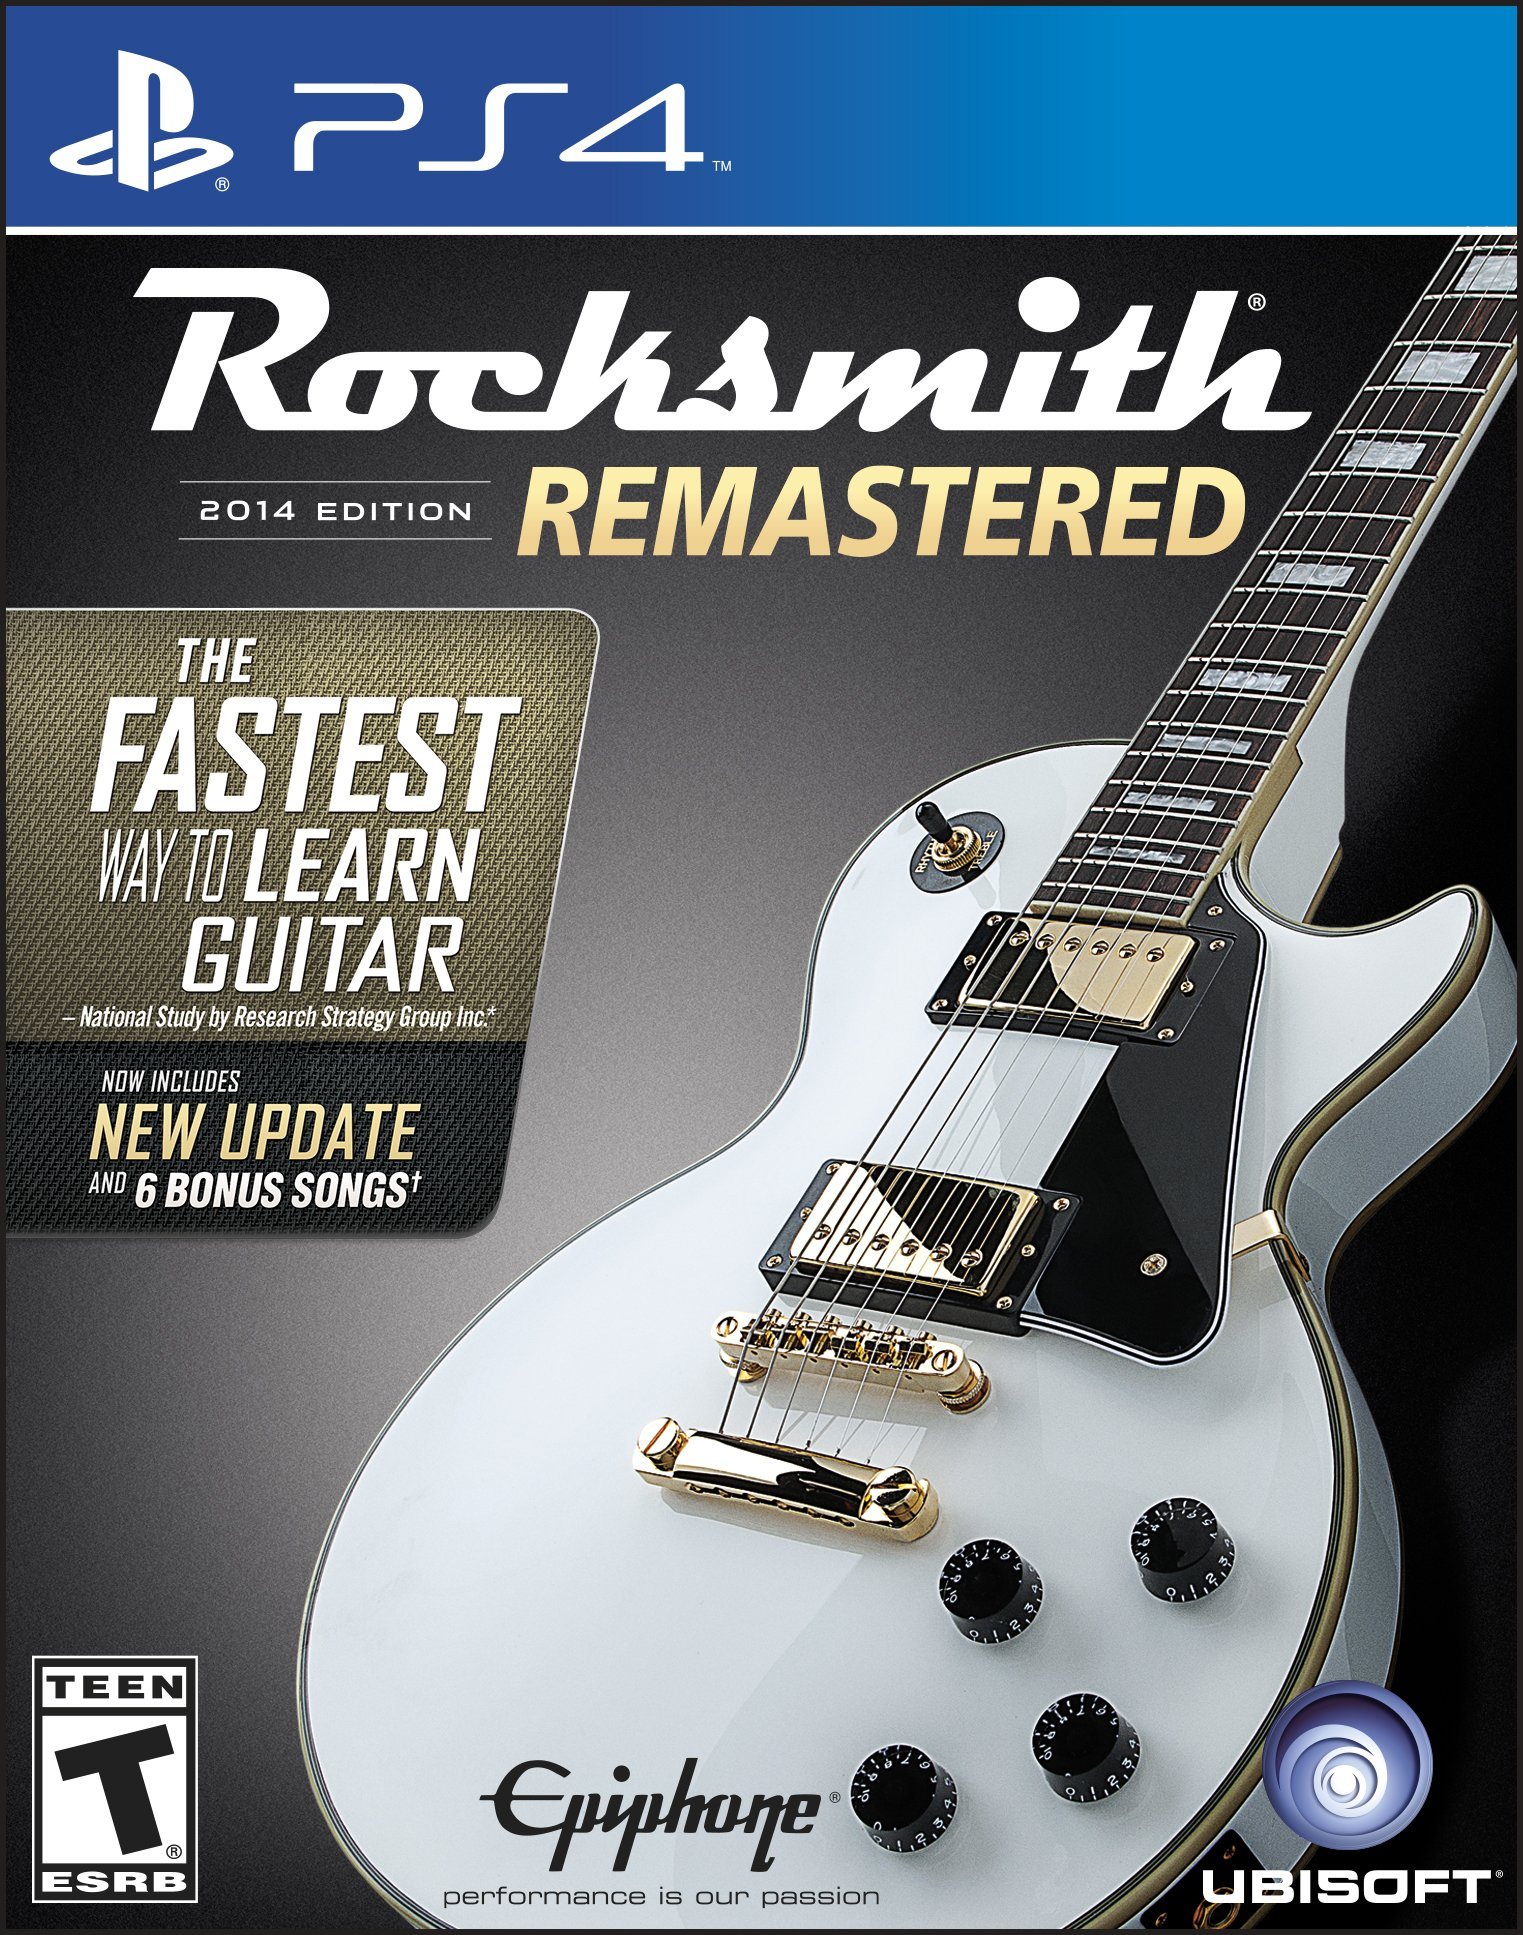 Rocksmith 2014 Edition Remastered Release Date (PC, Xbox